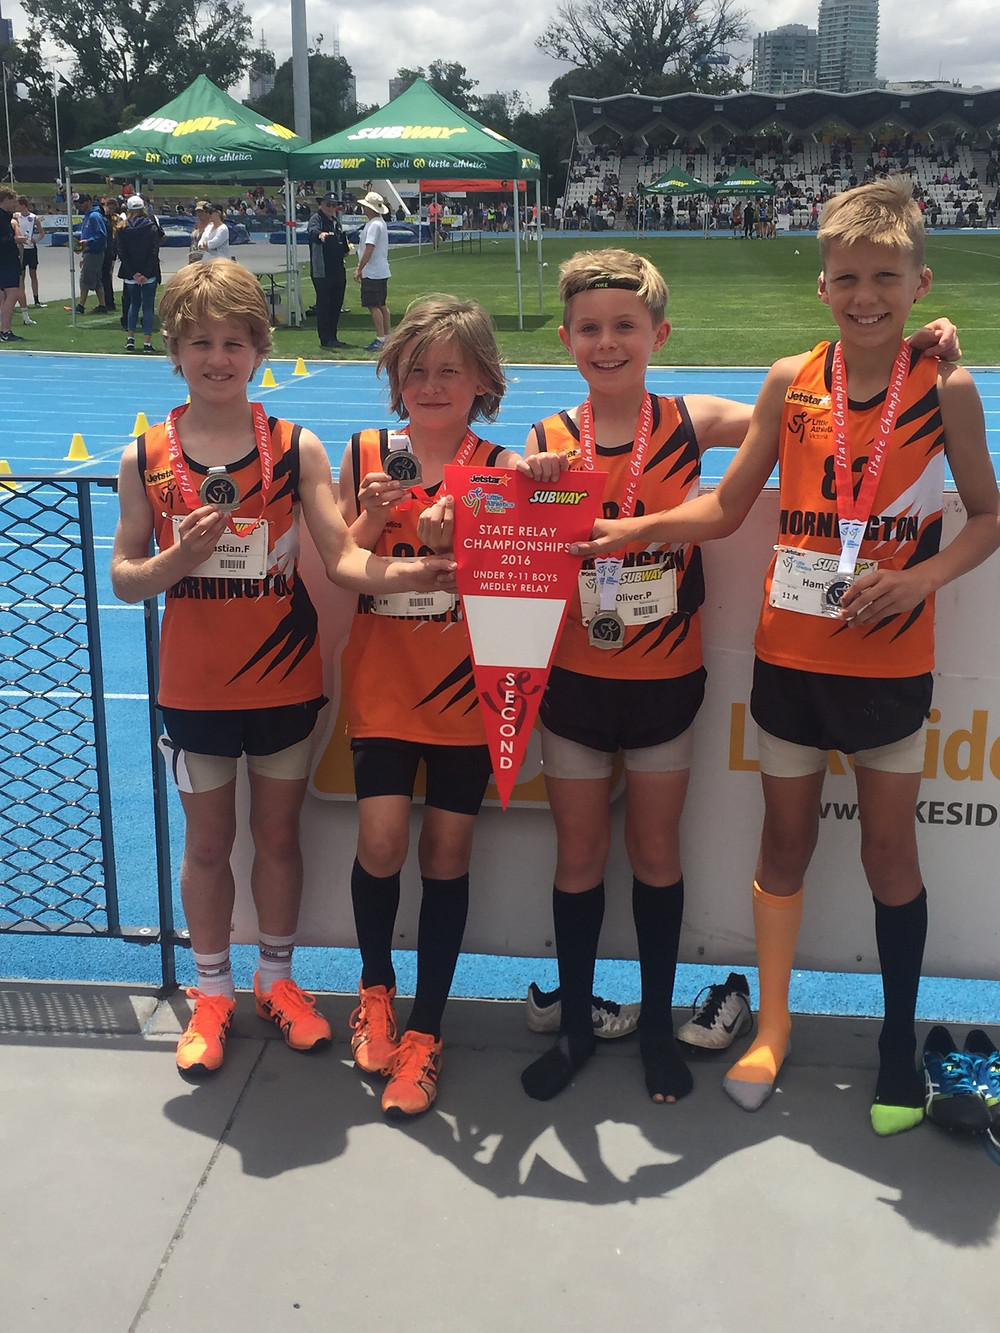 U9-11 Boys Mixed Age team